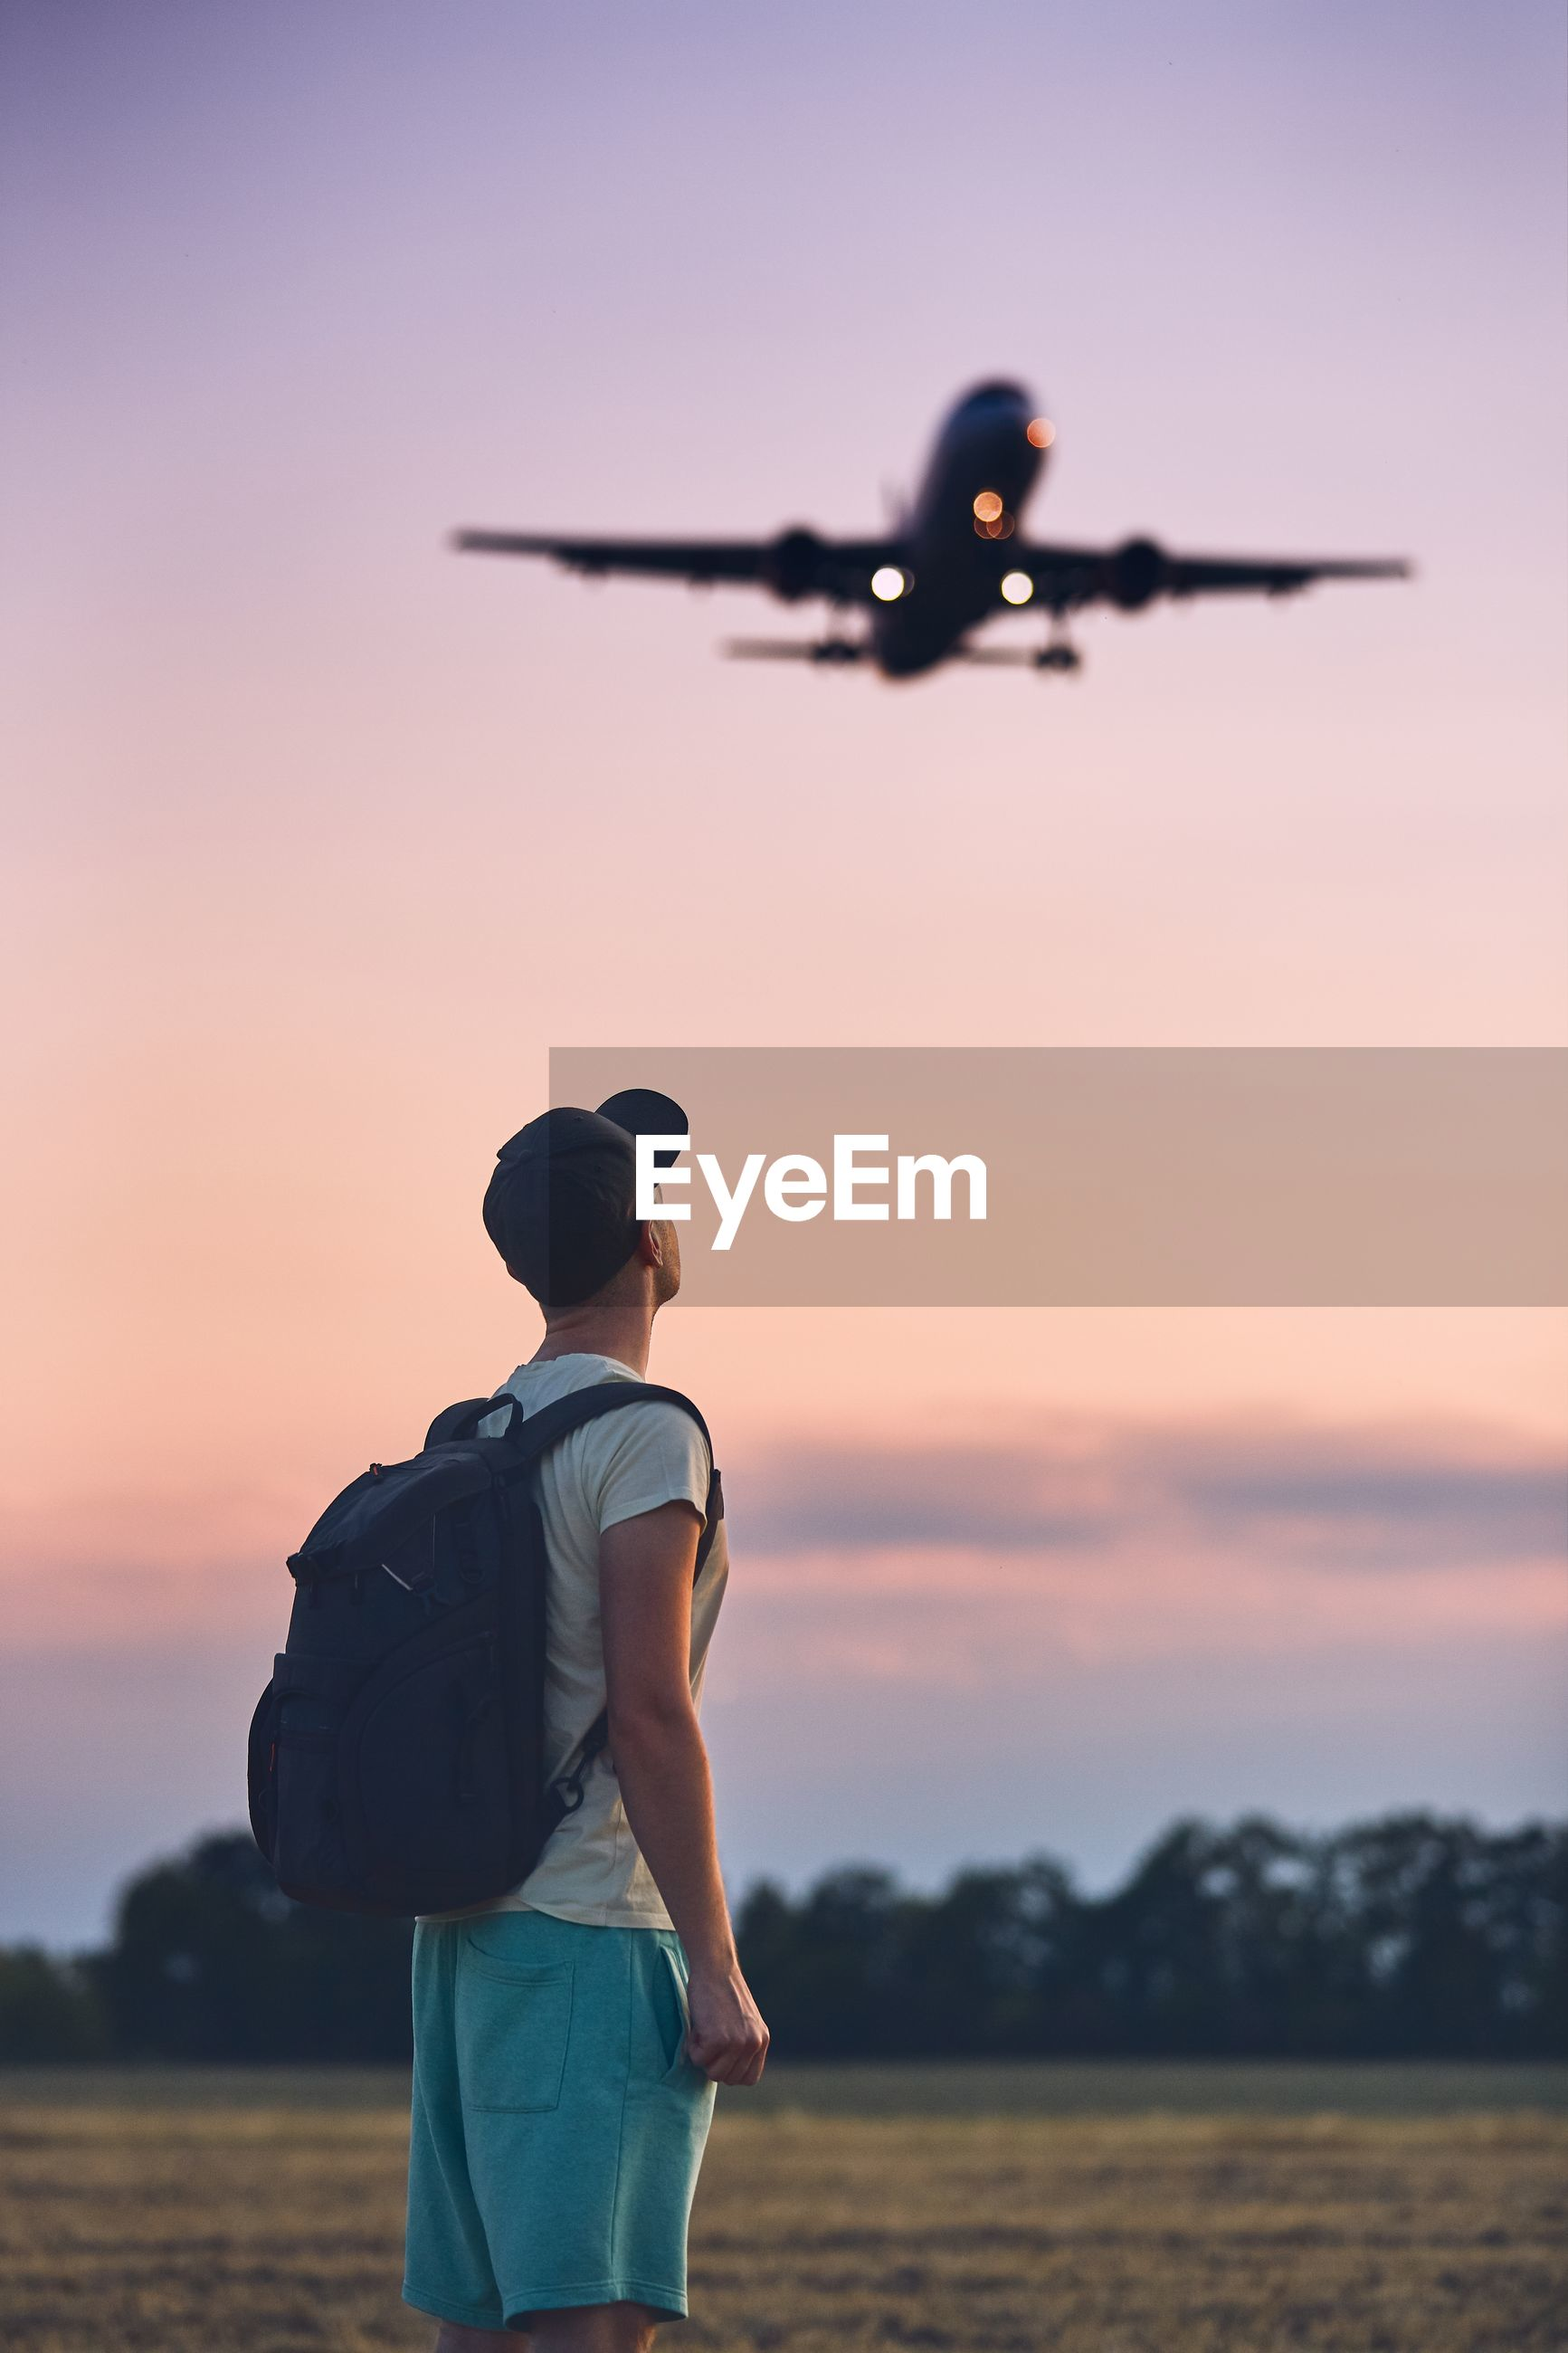 Side view of man with backpack looking at airplane against sky during sunset